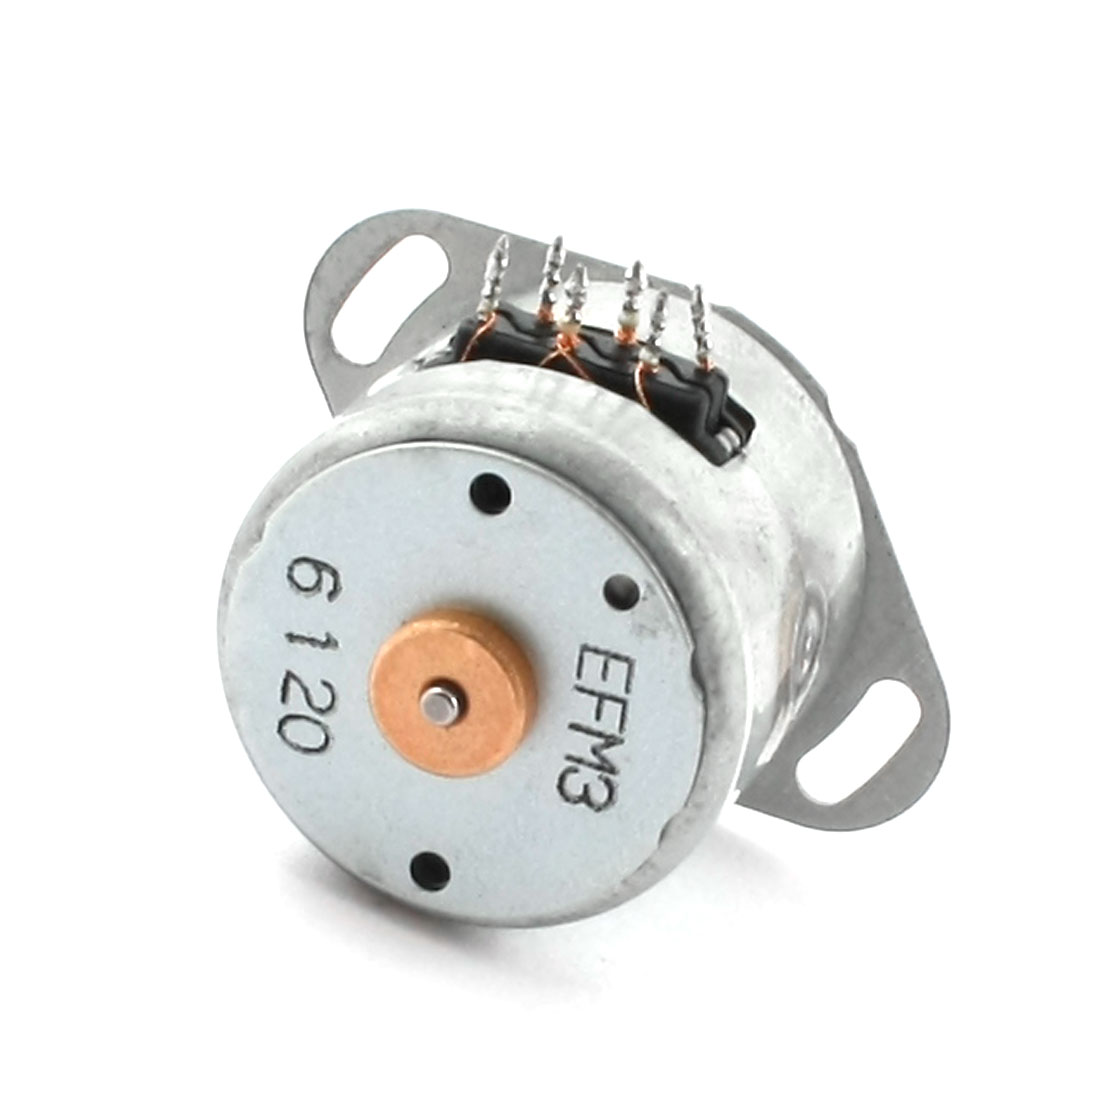 DC 3V 0.5A 20mm Diameter Round Shaped Stepper Stepping Motor Replacement 28000RMP